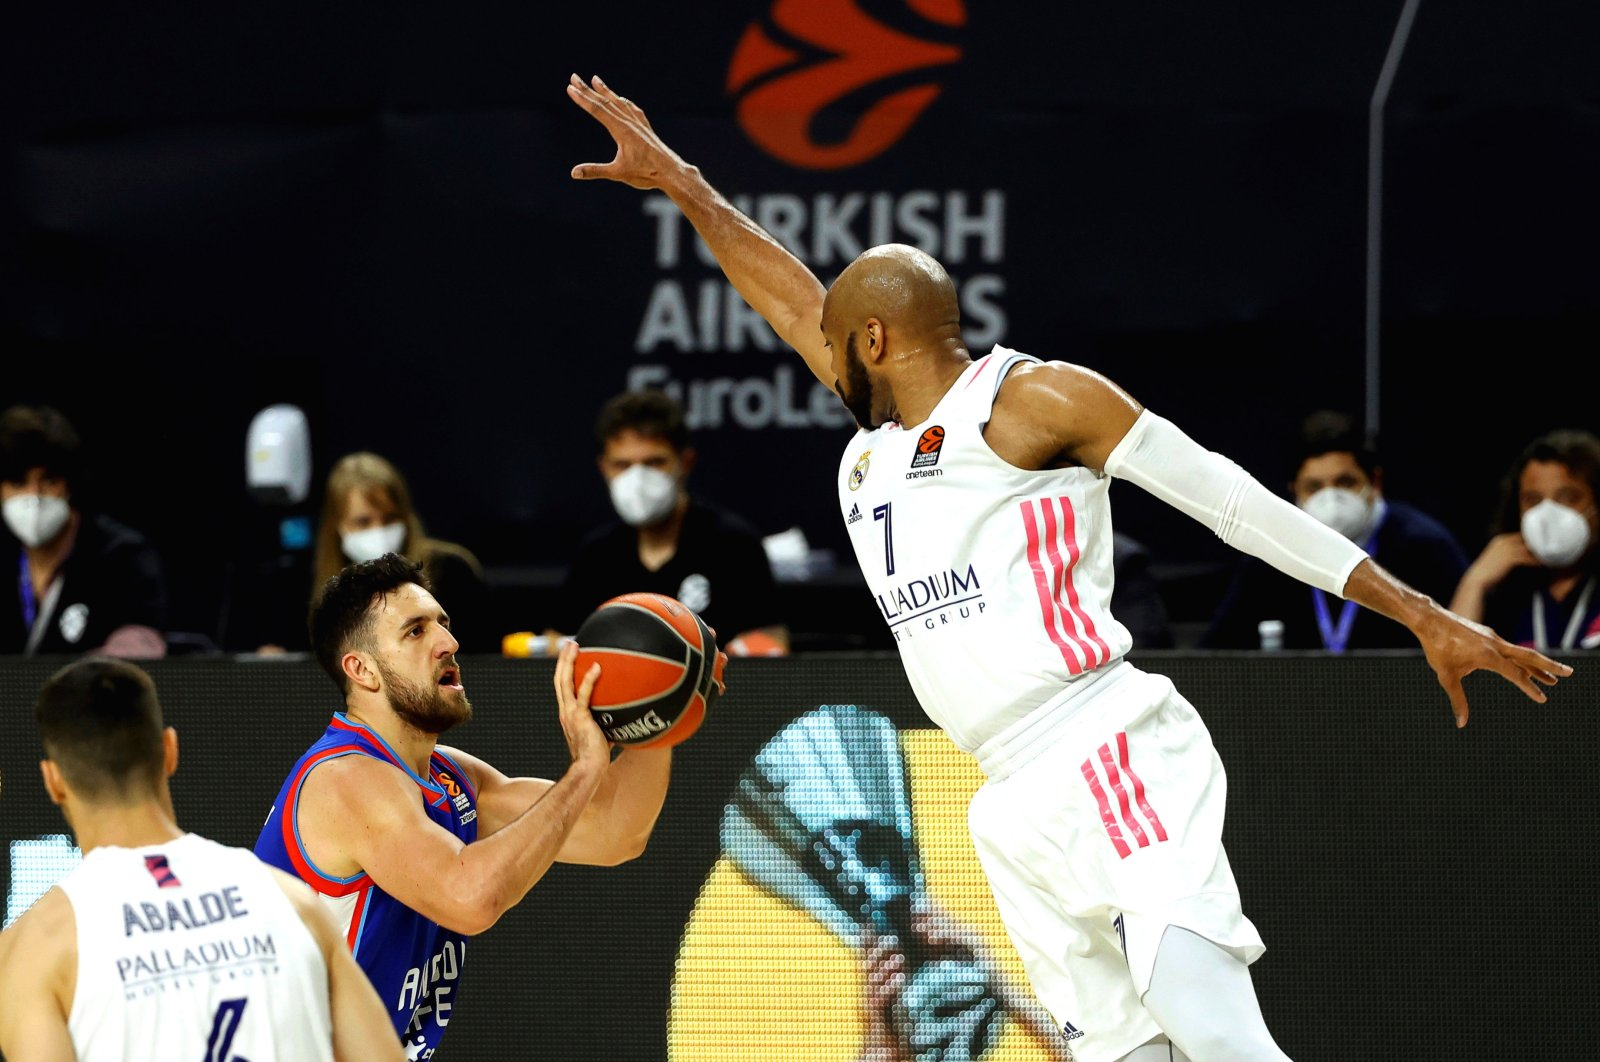 Real Madrid's Alex Tyus (R) in action against Anadolu Efes' Vasilije Micic (C) during a THY Euroleague Playoff match in Madrid, Spain, April 27, 2021. (EPA Photo)